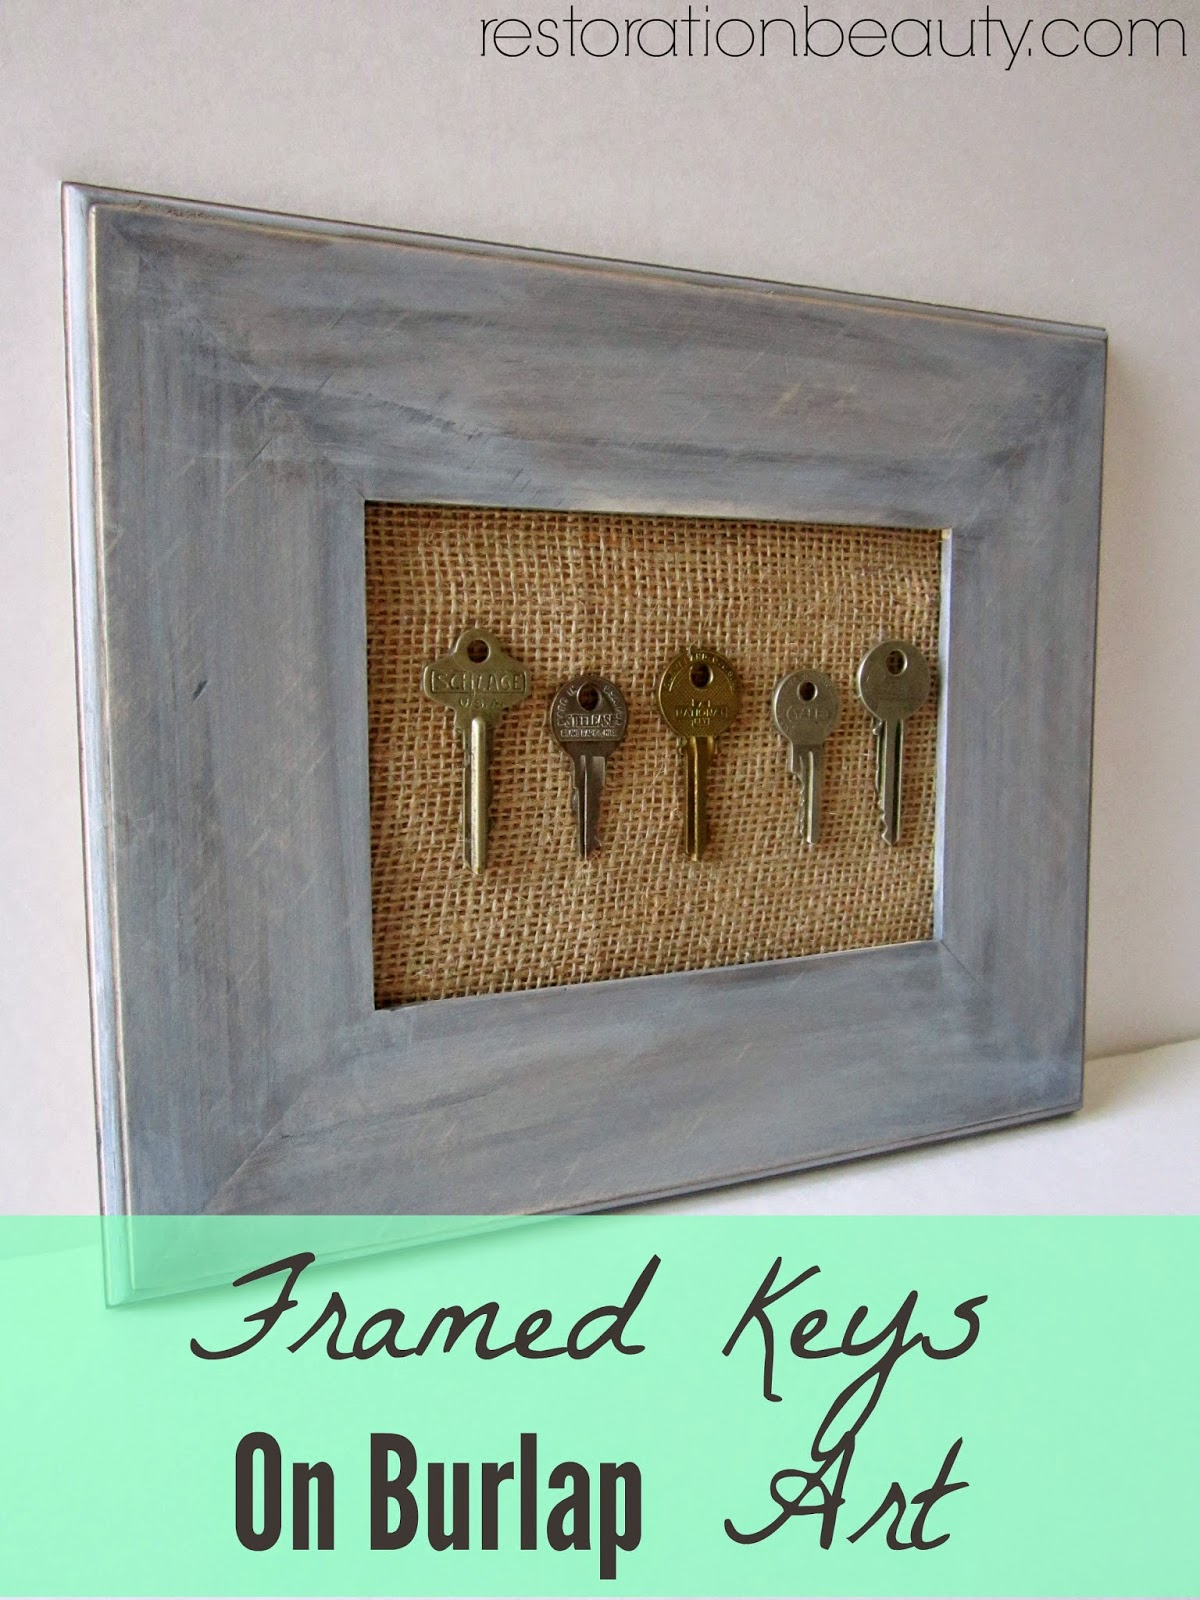 Restoration Beauty: Framed Keys On Burlap {Fun DIY Art}